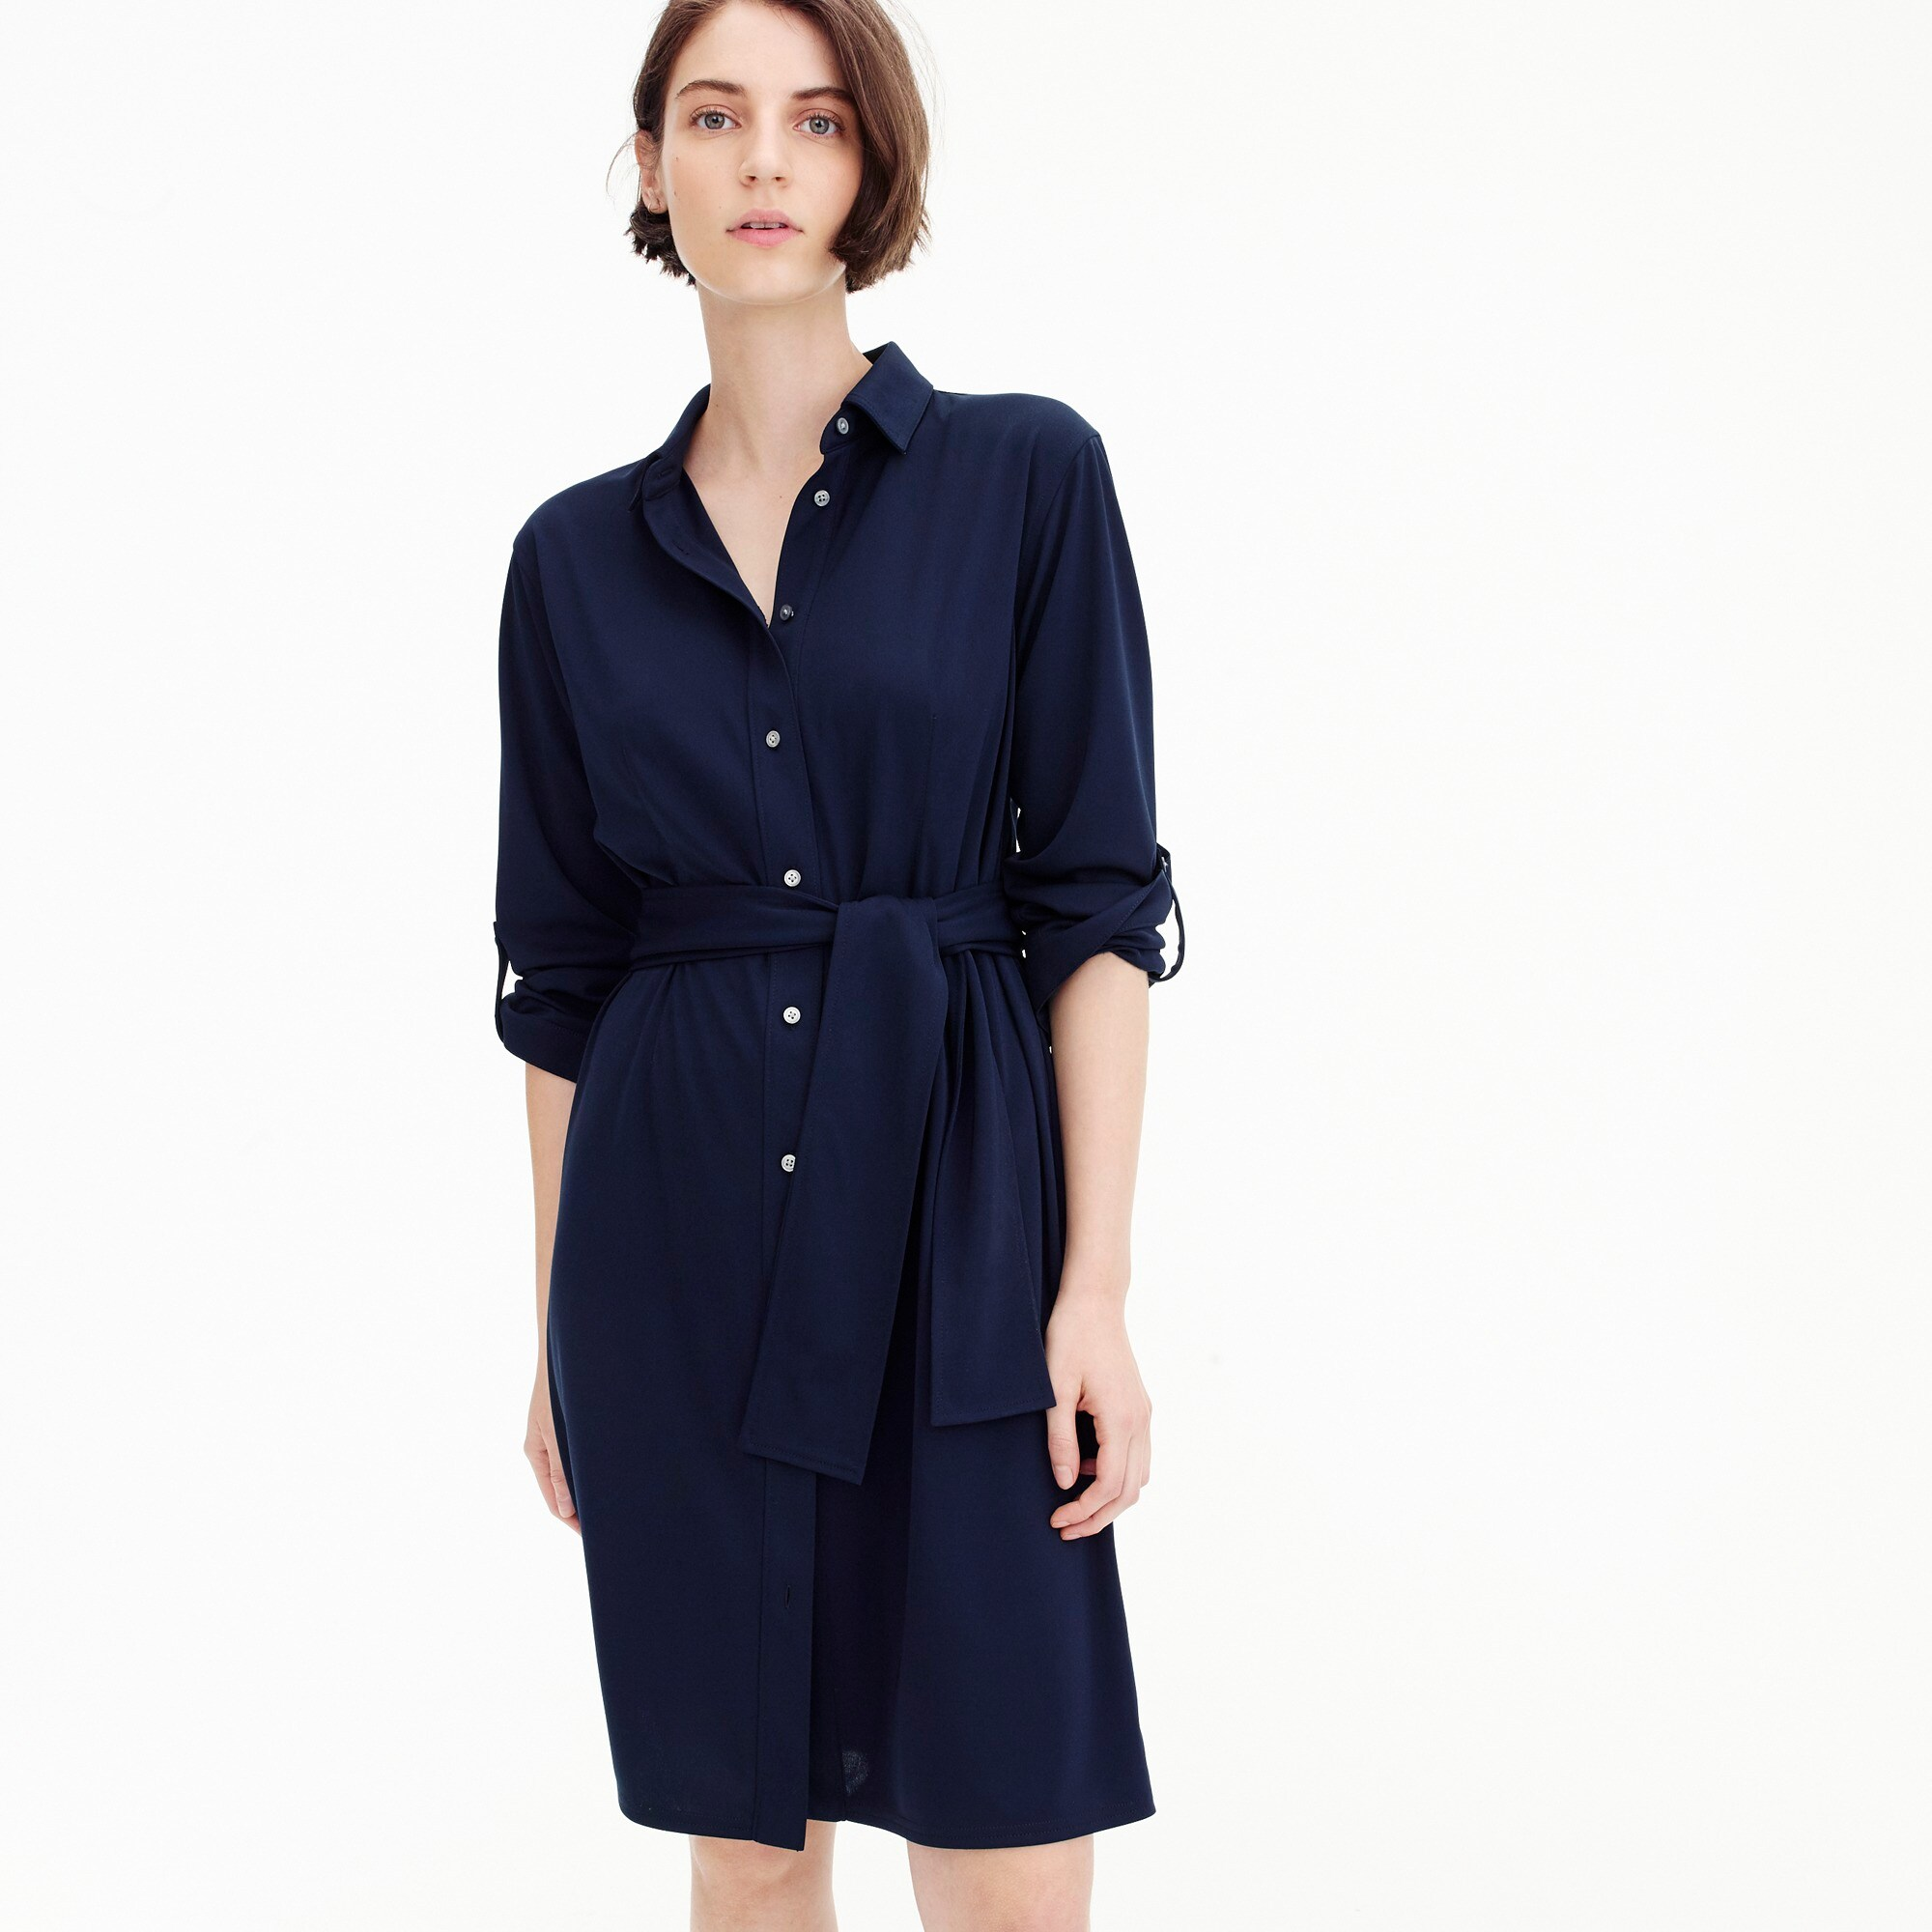 womens Tie-waist knit shirtdress